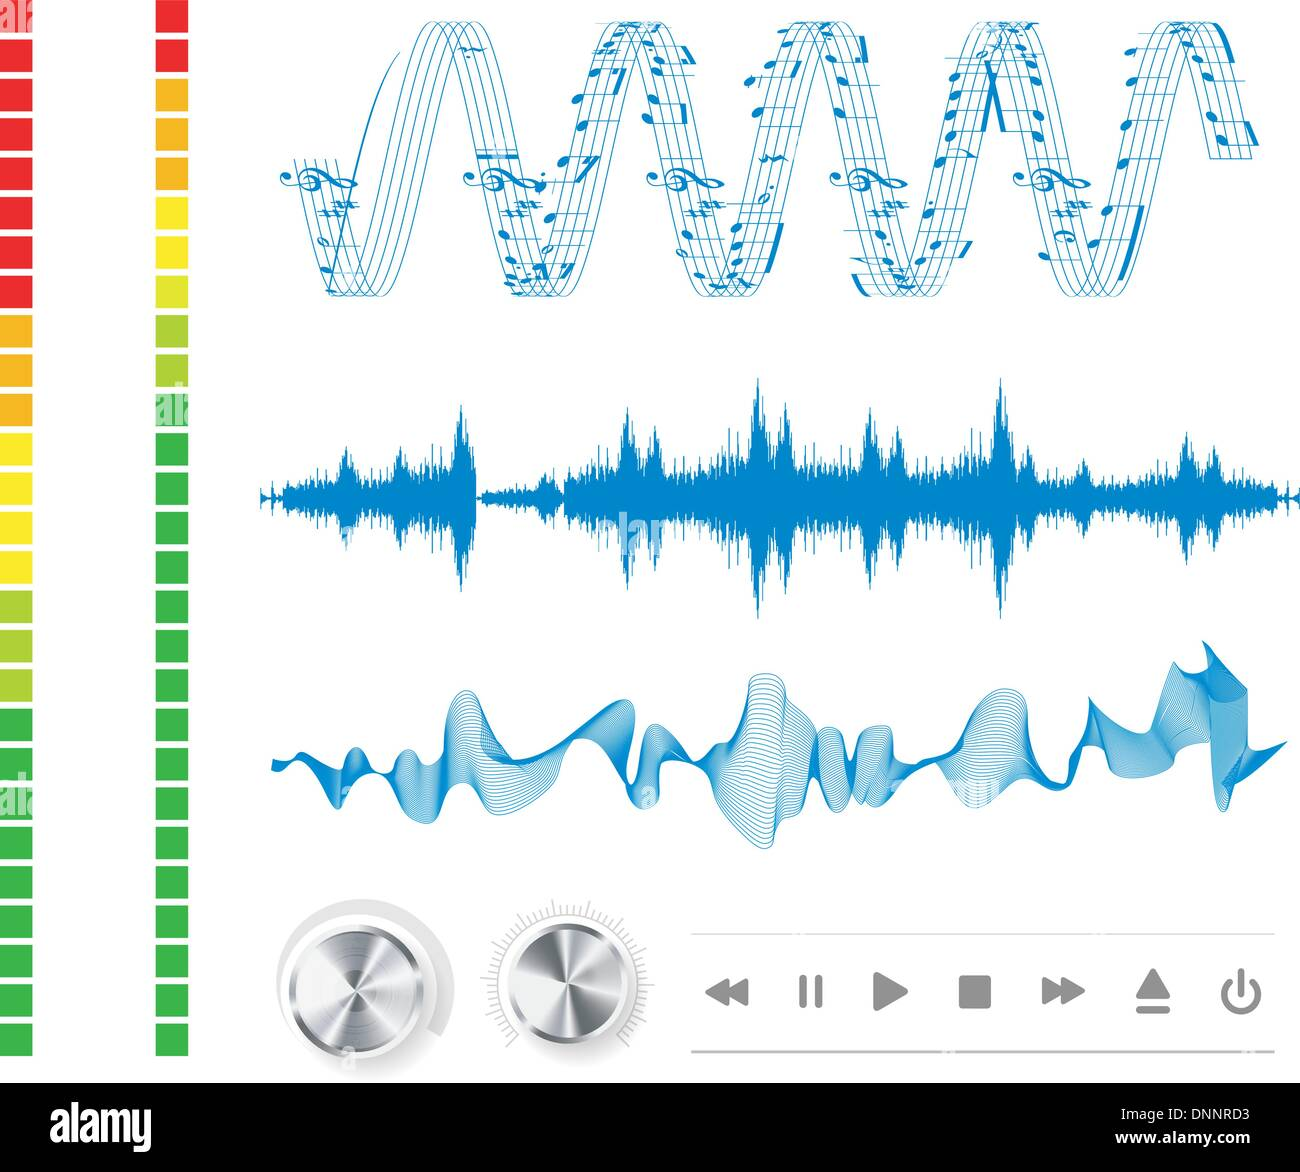 Notes, buttons and sound waves. Music background. - Stock Image